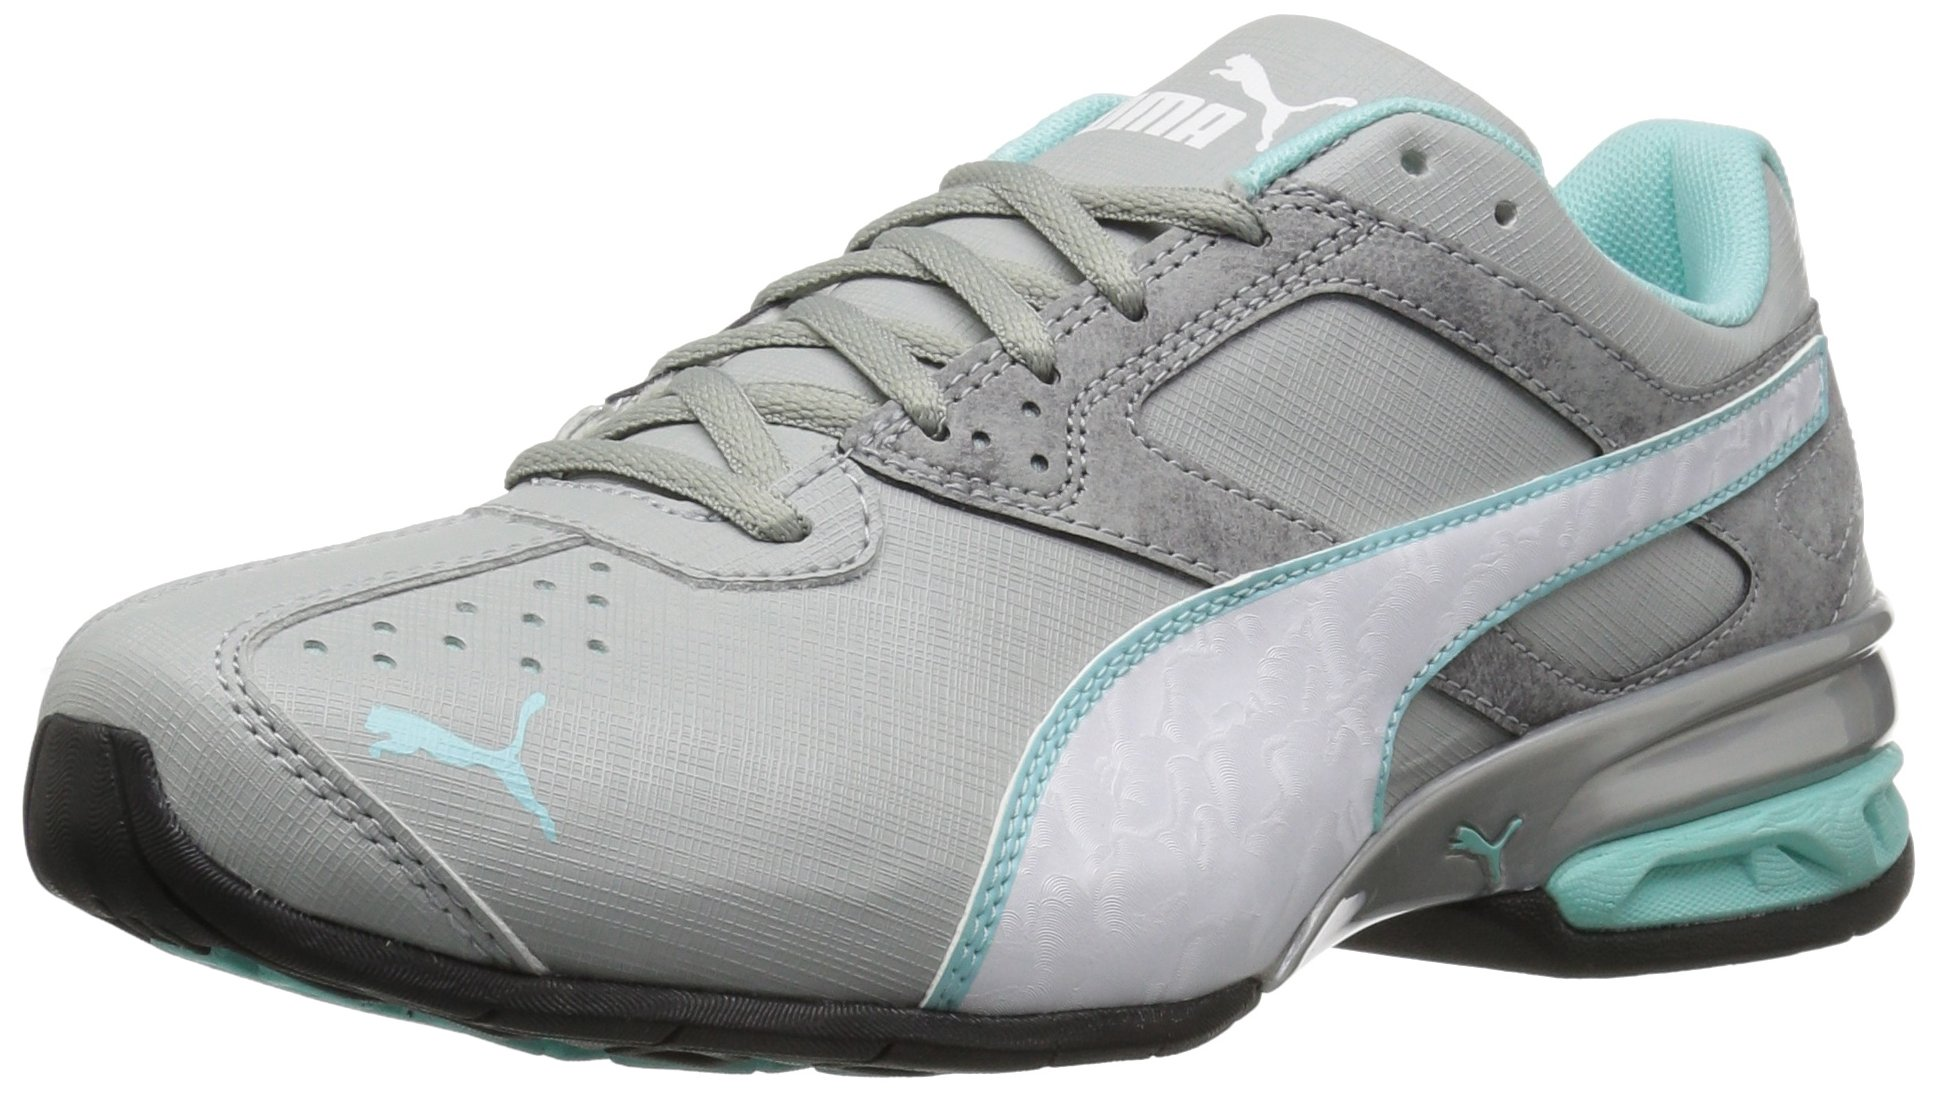 PUMA Women's Tazon 6 Accent WN's Cross-Trainer Shoe, Quarry White-Aruba Blue, 8 M US